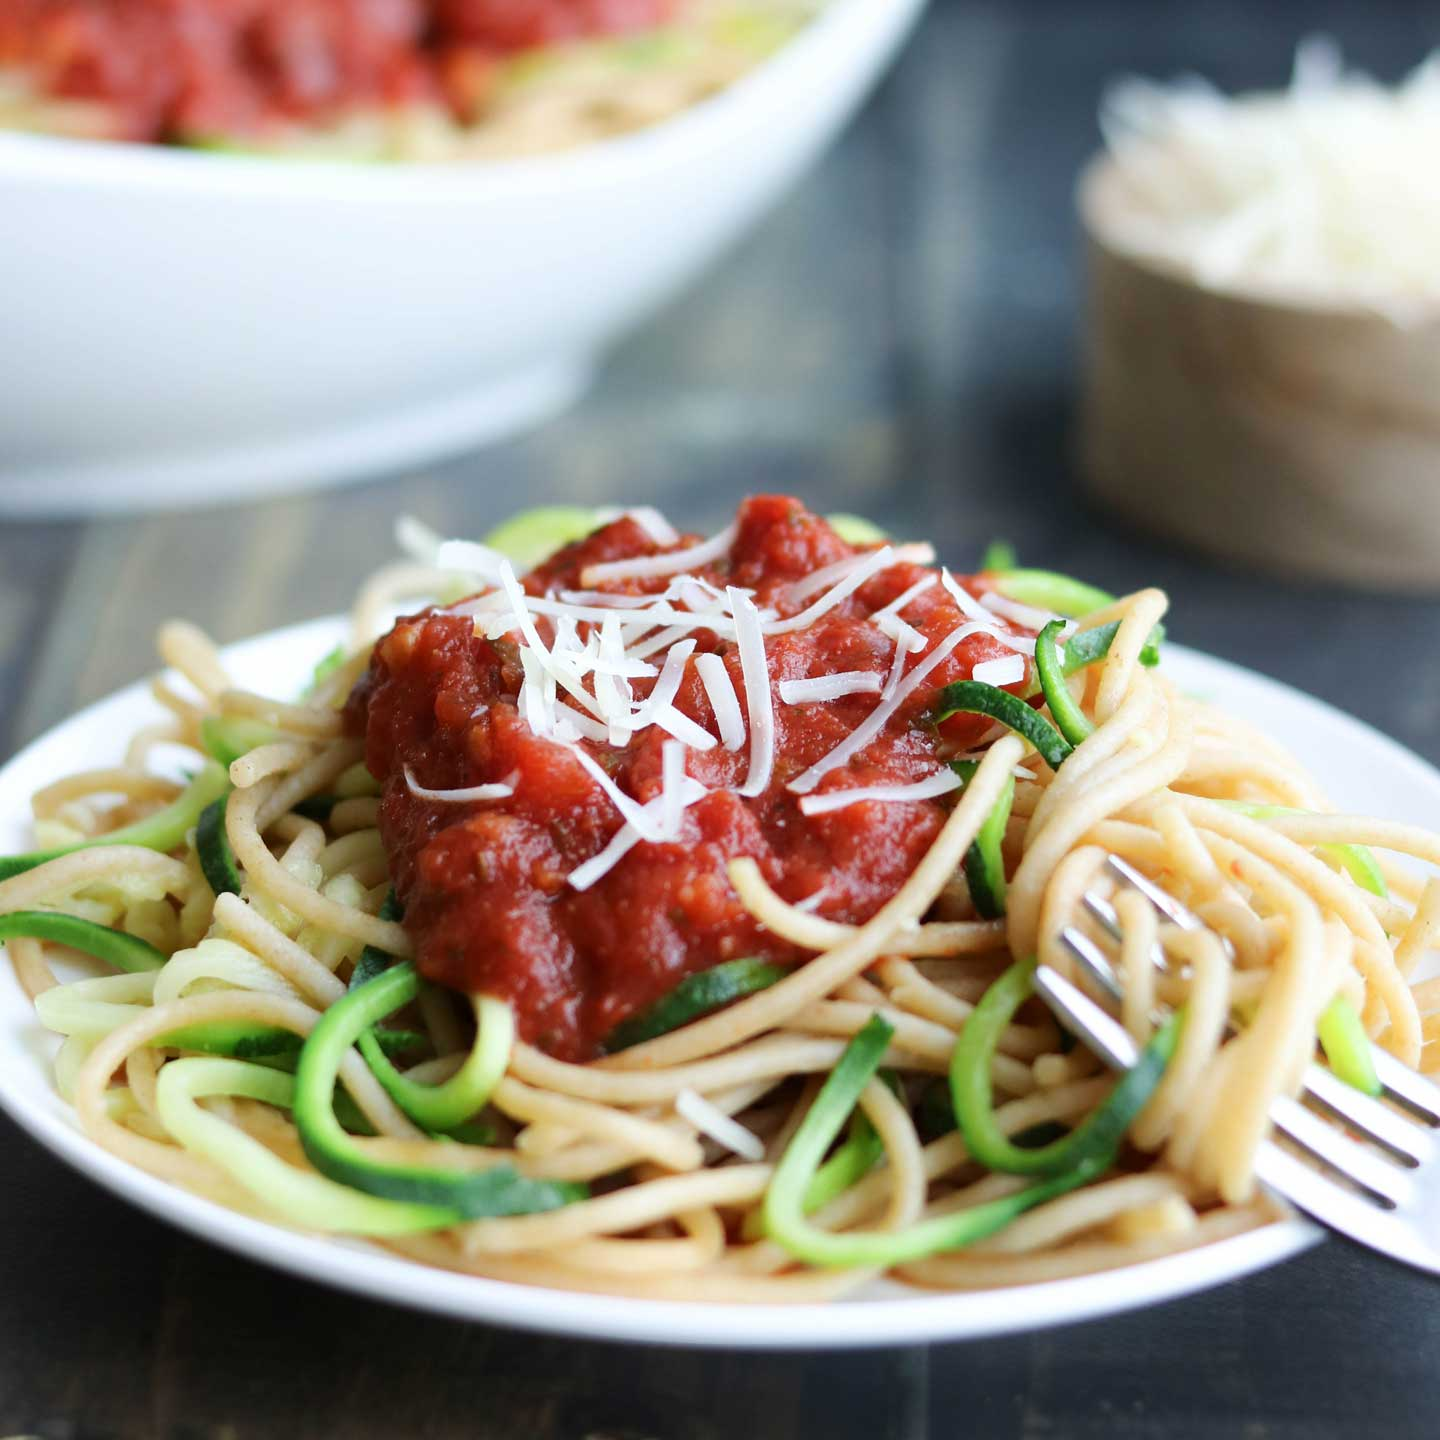 Spiralized veggies are a fun way to get your family eating more produce. This zoodles recipe is an easy place to start!